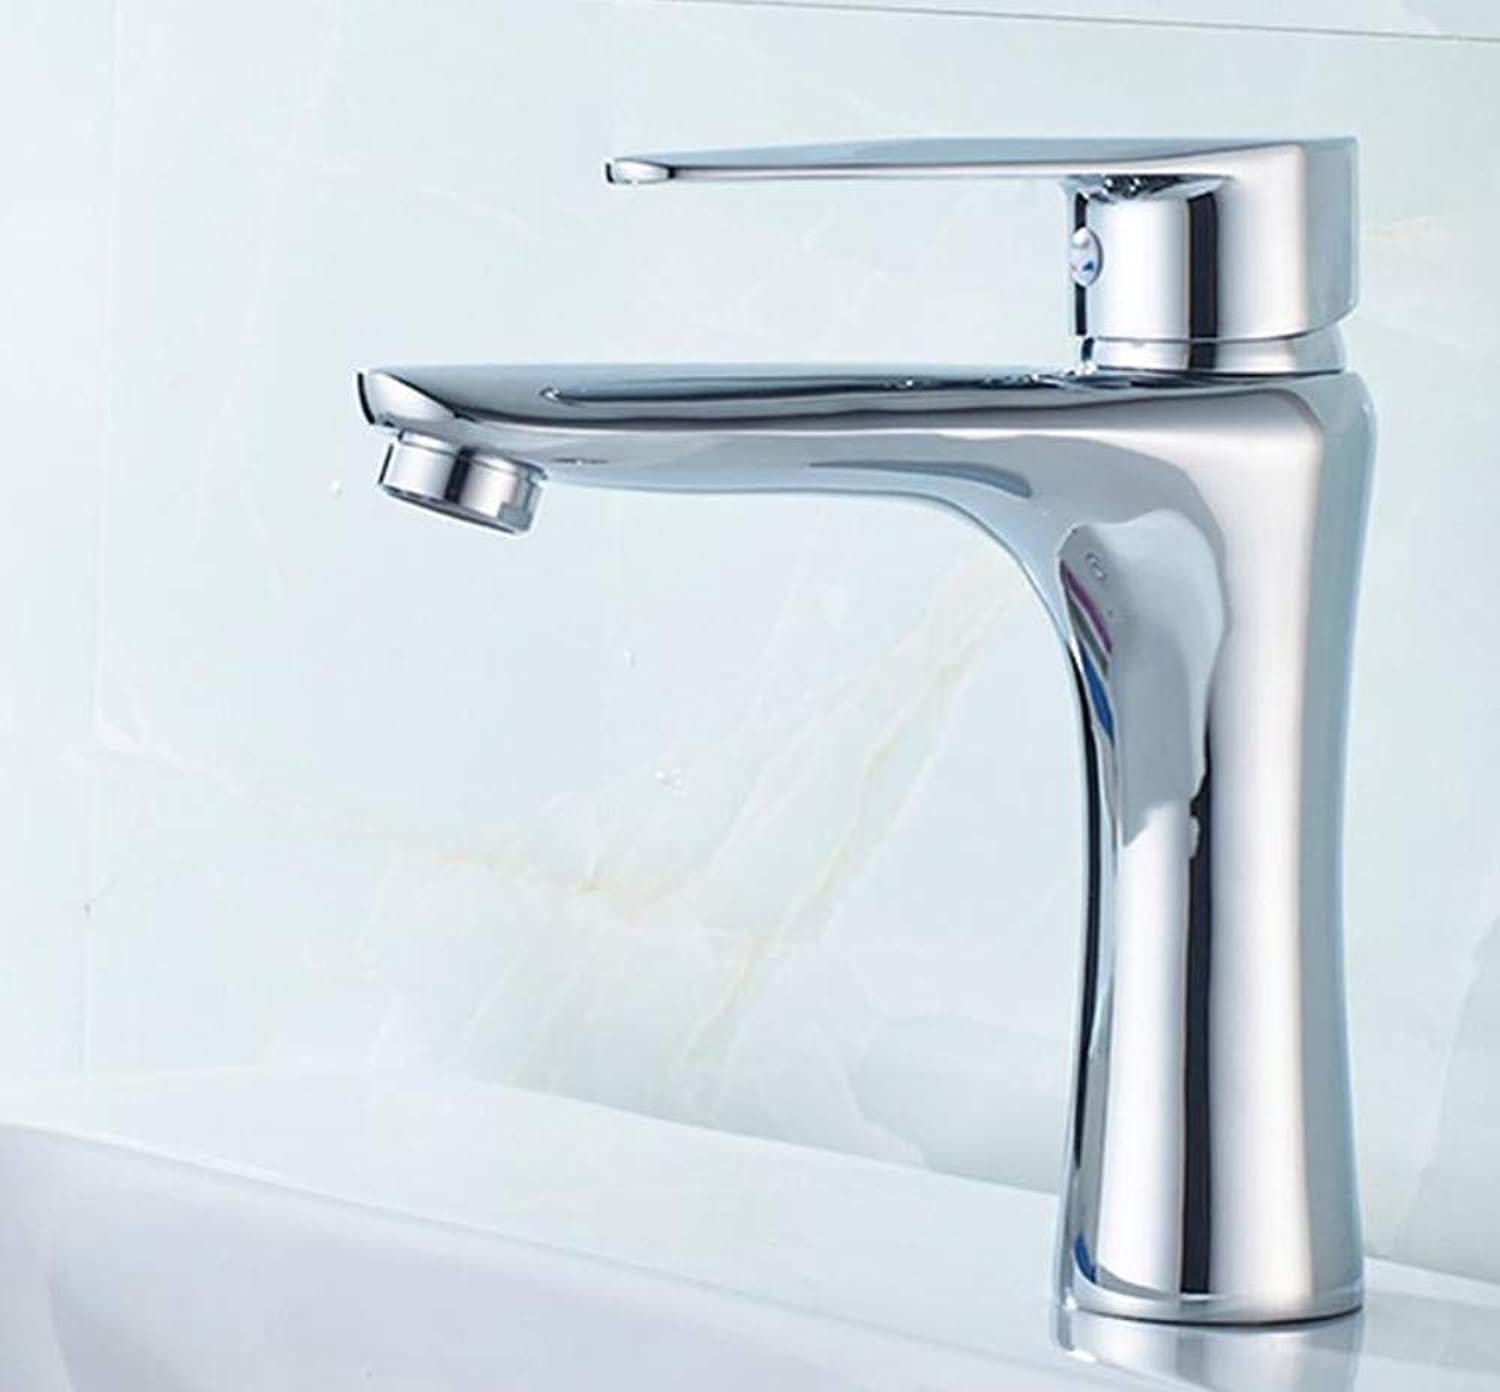 Copper Basin Faucet Bathroom washbasin Single Hole hot and Cold Water Faucet wash Basin Faucet